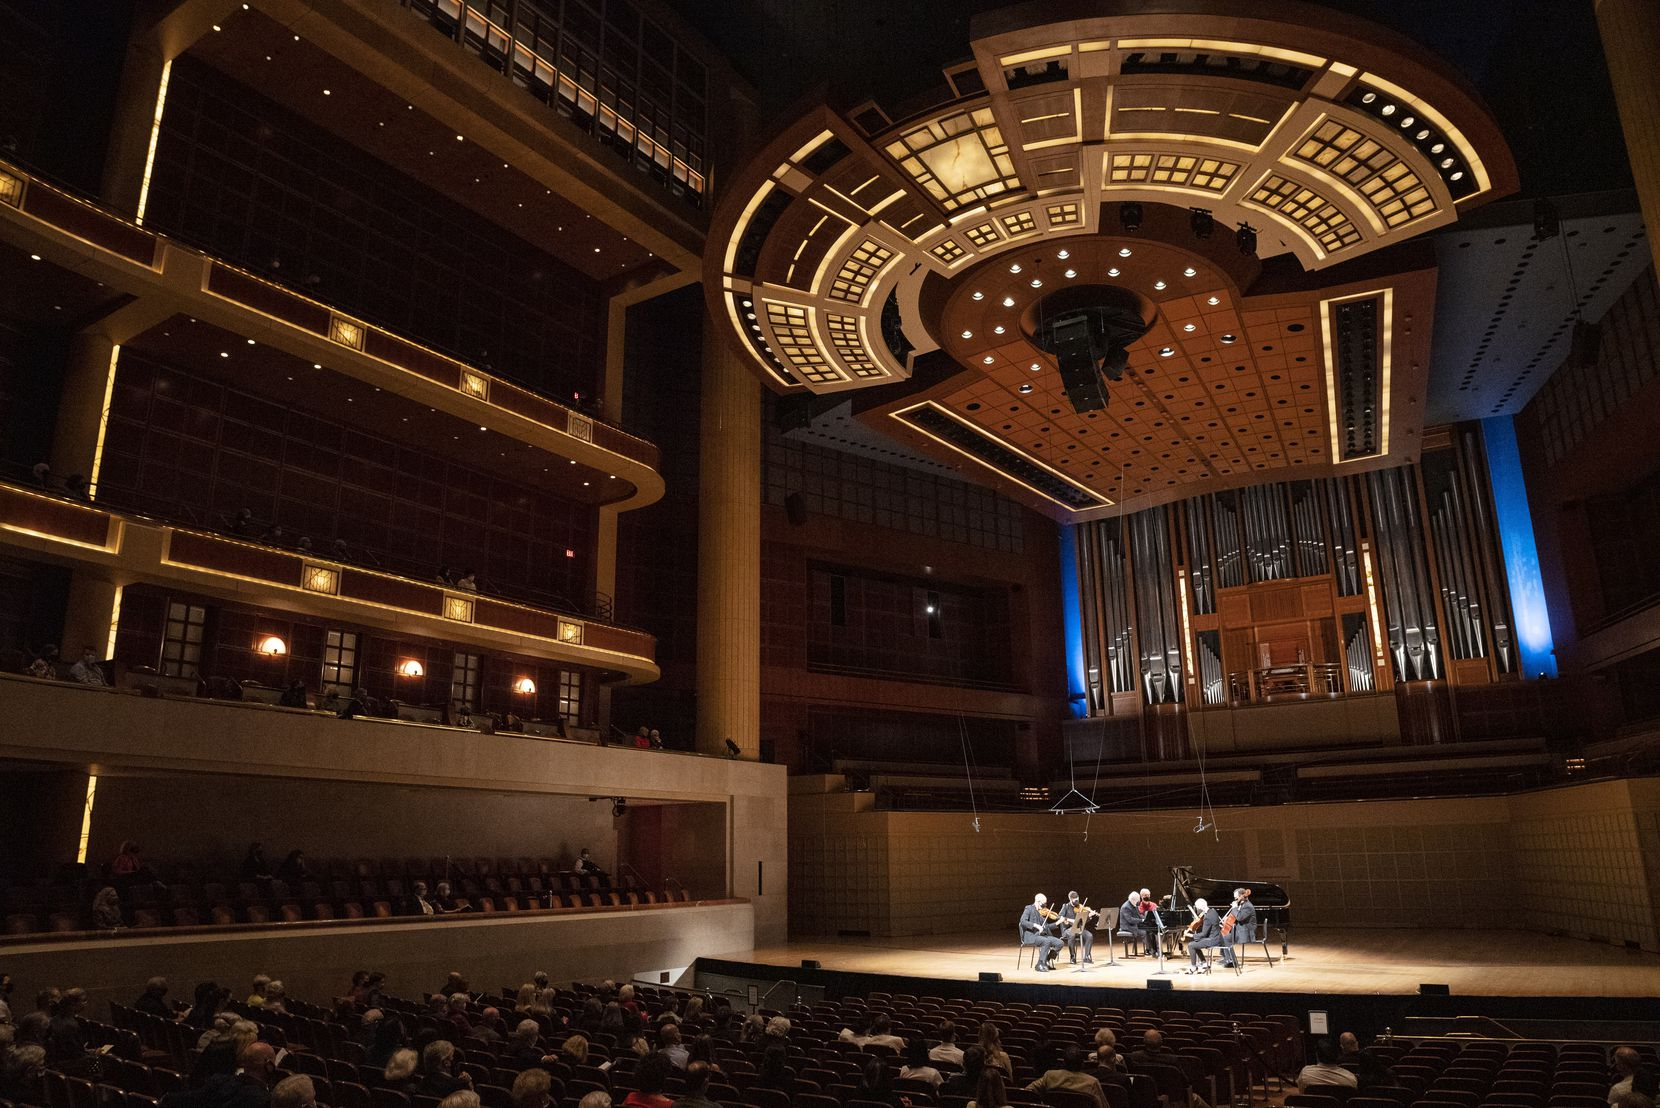 In April, pianist and Dallas Symphony Orchestra Arist-In-Residence, Emanuel Ax, on piano, with musicians from the Dallas Symphony Orchestra at the Meyerson.